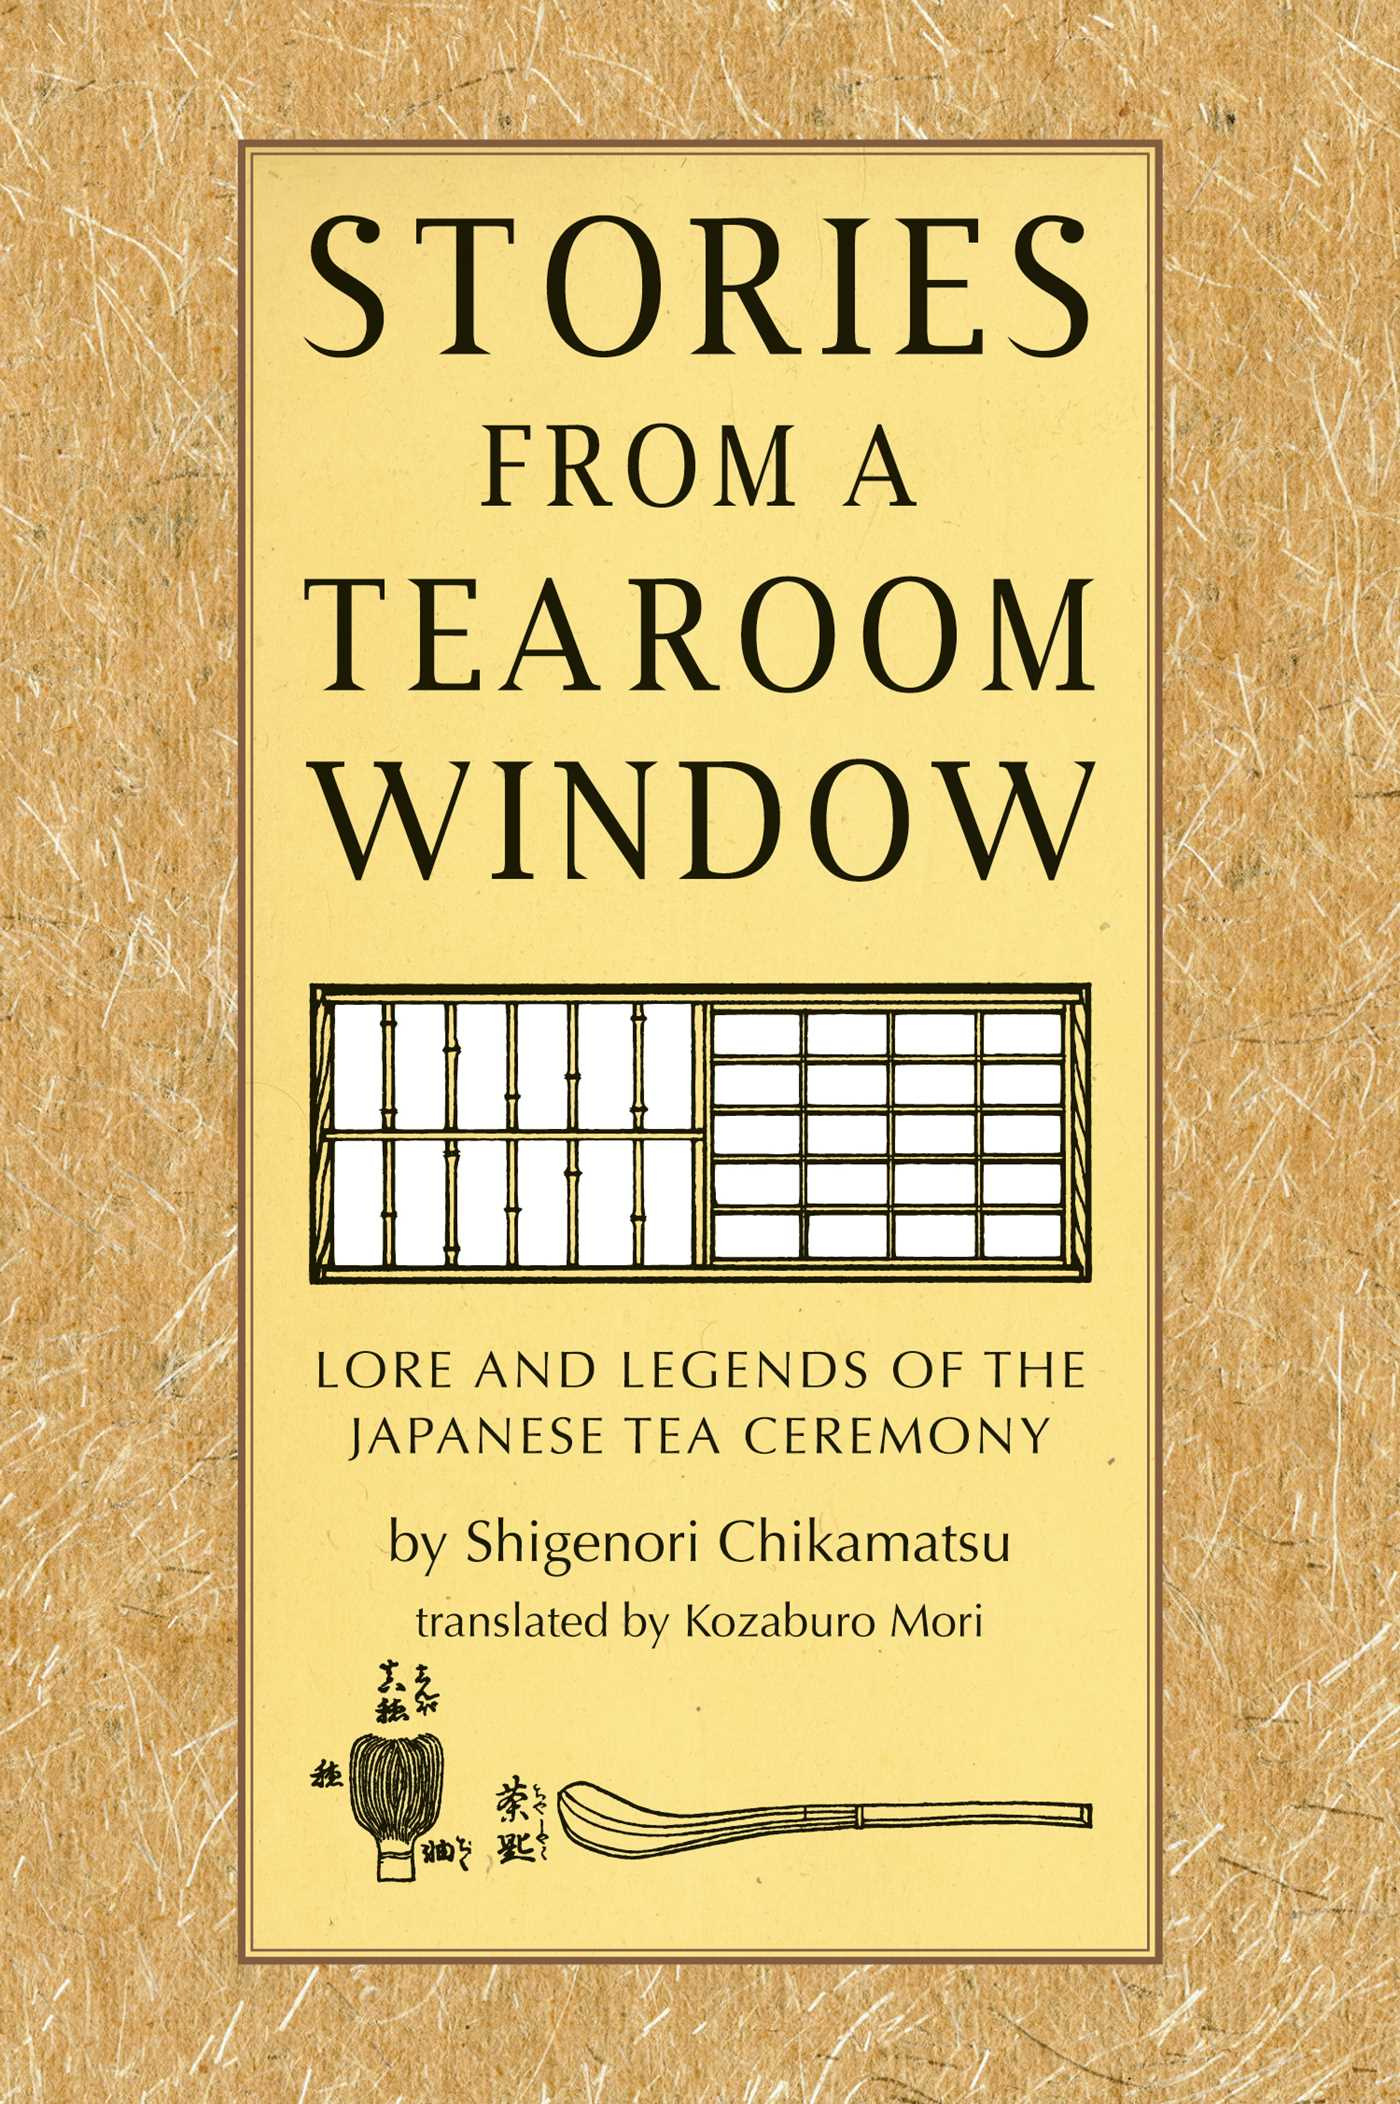 Stories-from-a-tearoom-window-9784805314081_hr